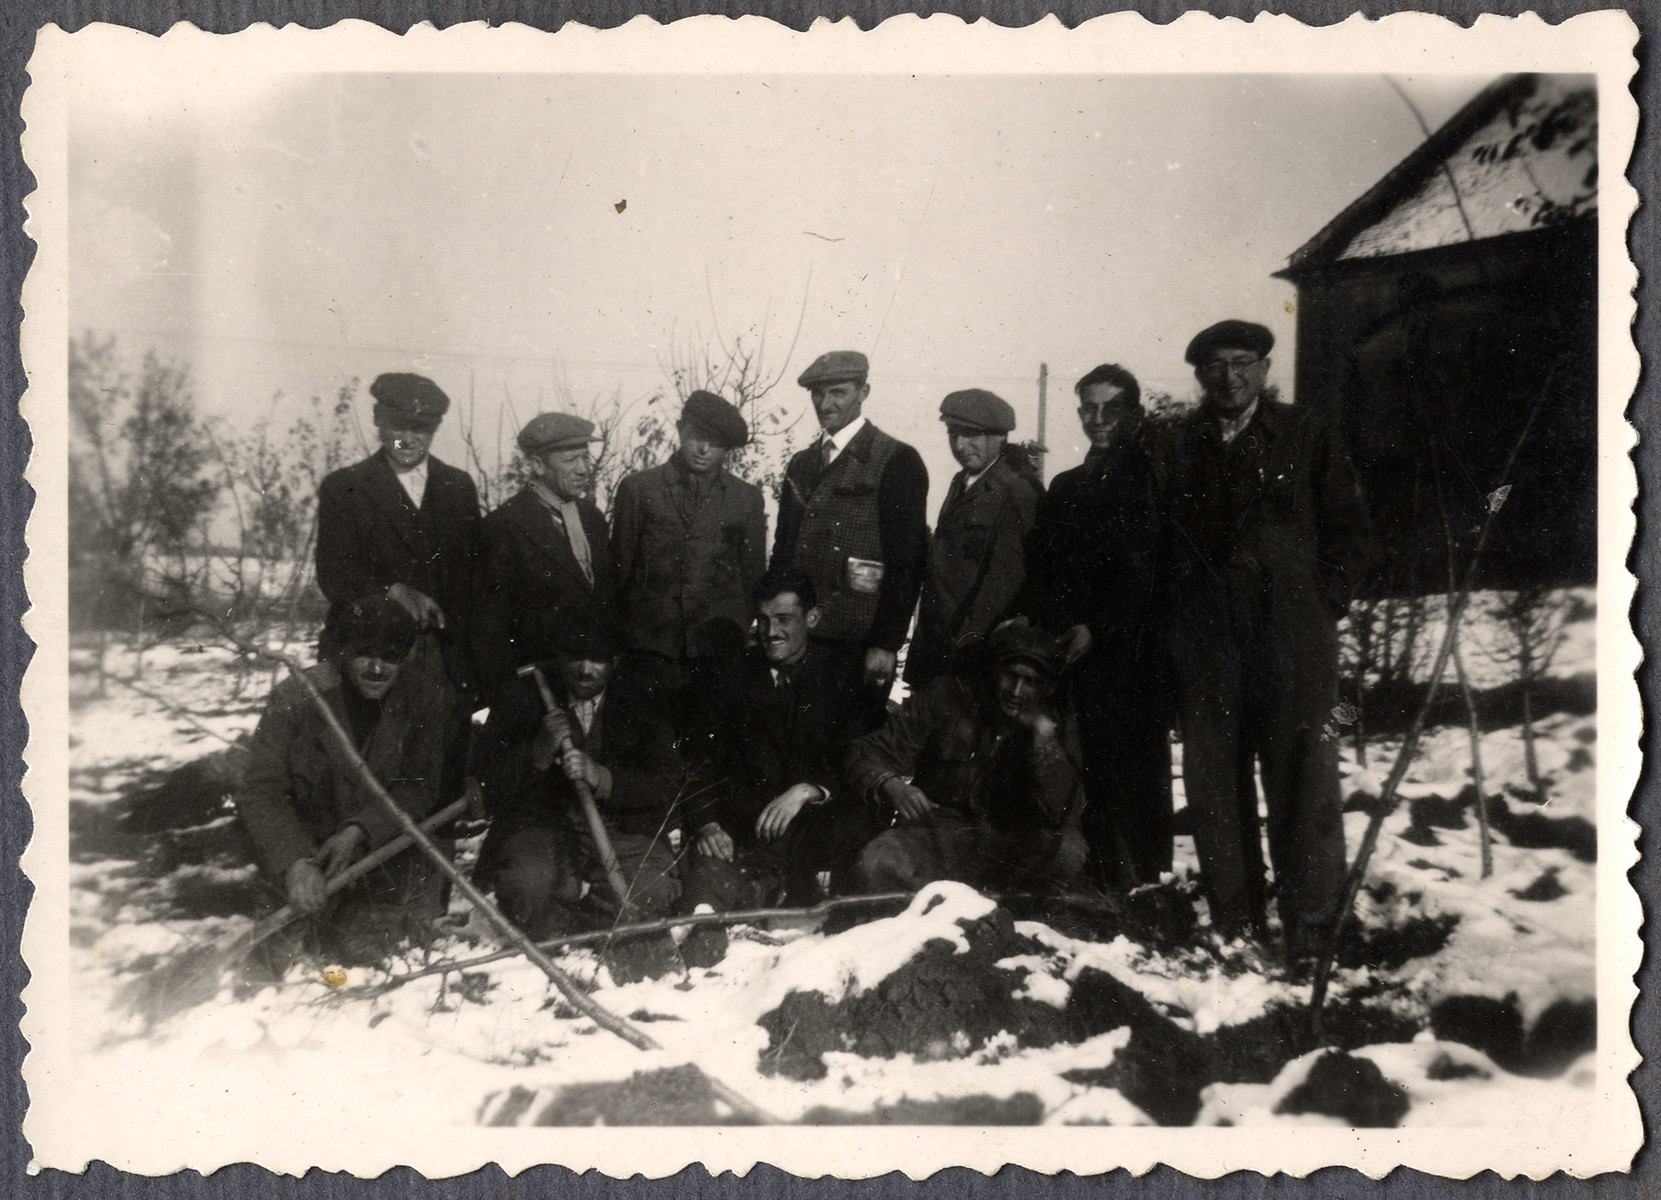 """Group portrait of Jewish workers from the Lipa farm labor camp in Cervene Pecky where they were allowed to work for a week in the spring of 1942.  The original caption reads """"last photo, last year."""""""